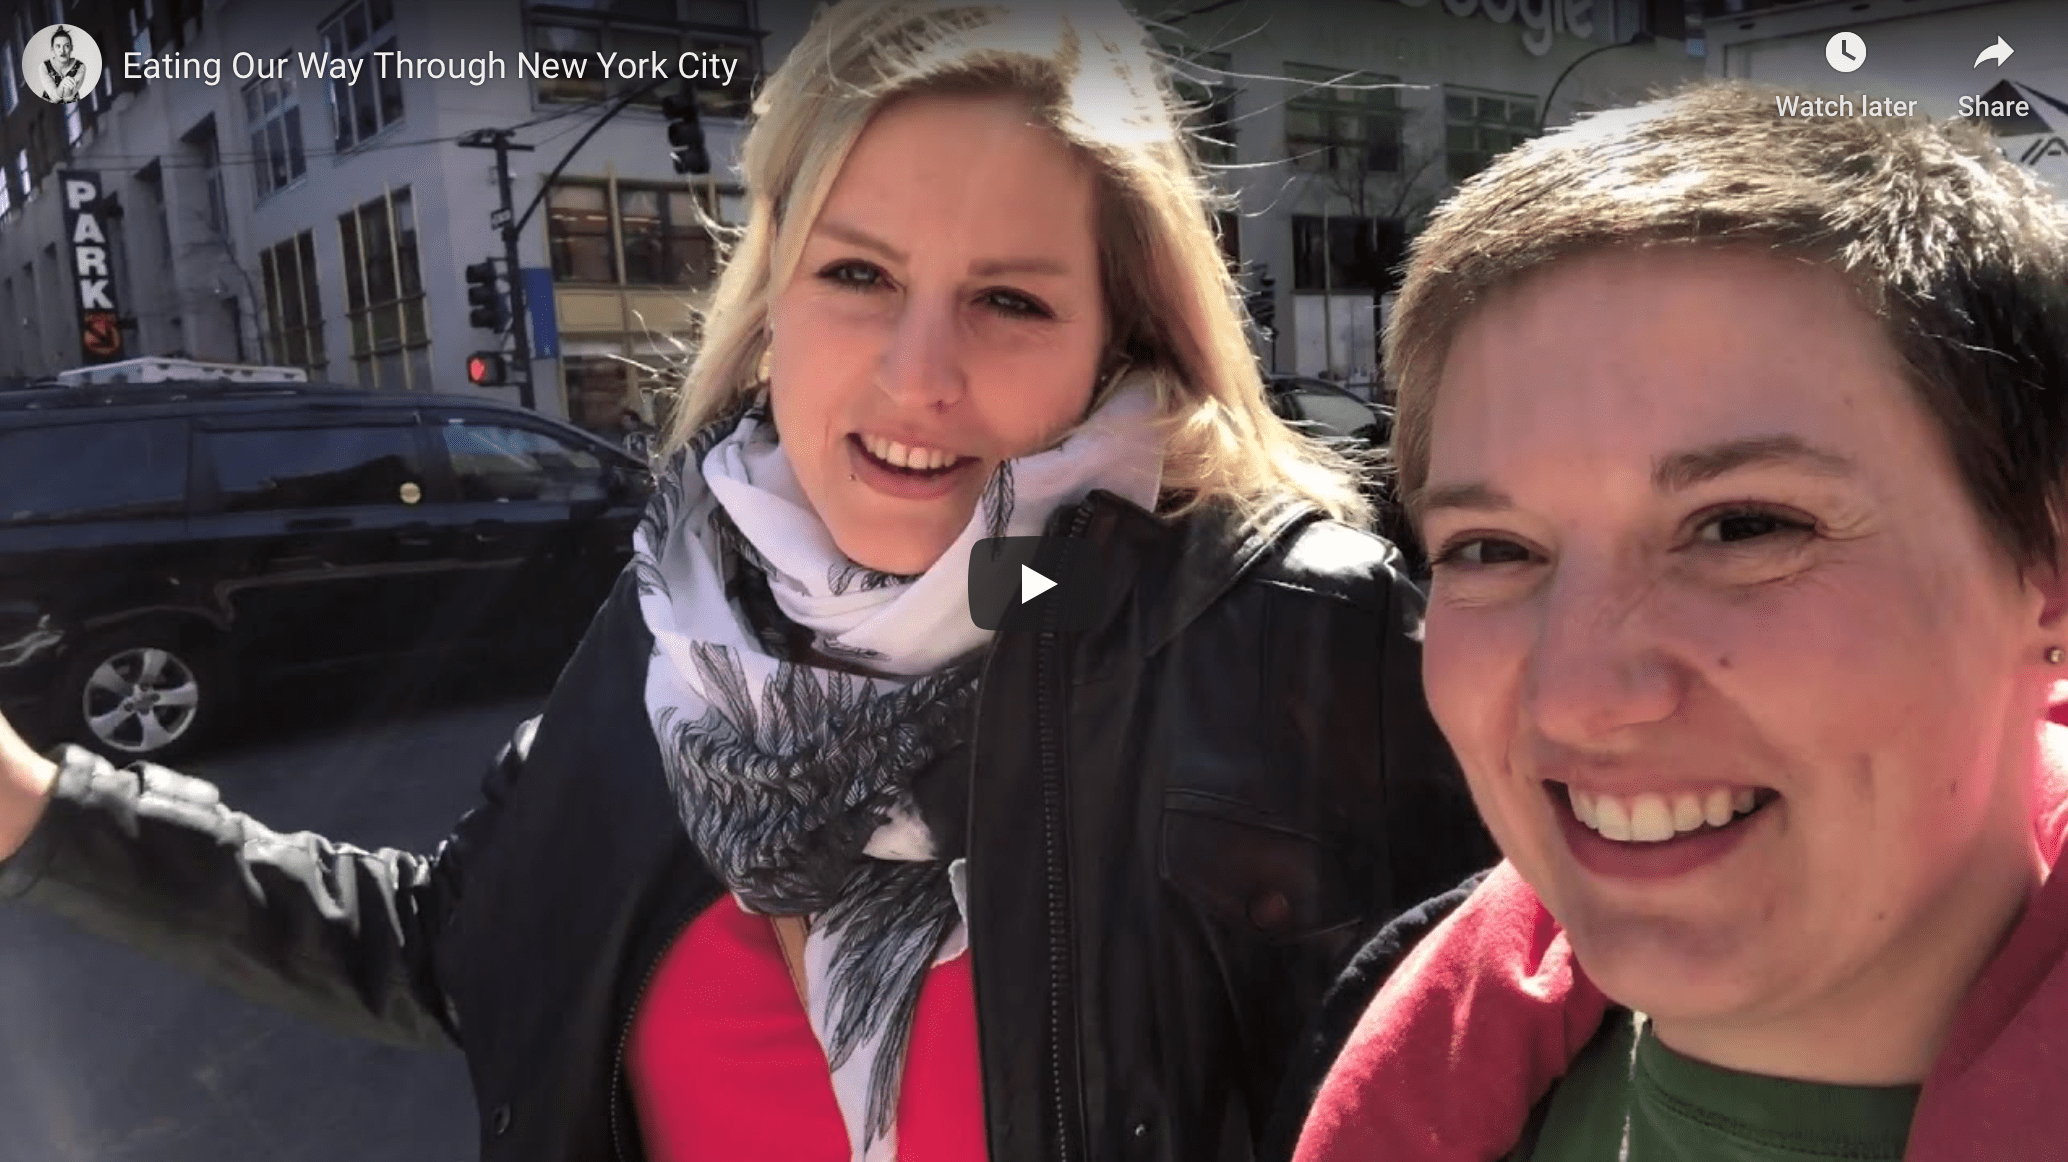 Eating Our Way Through New York City